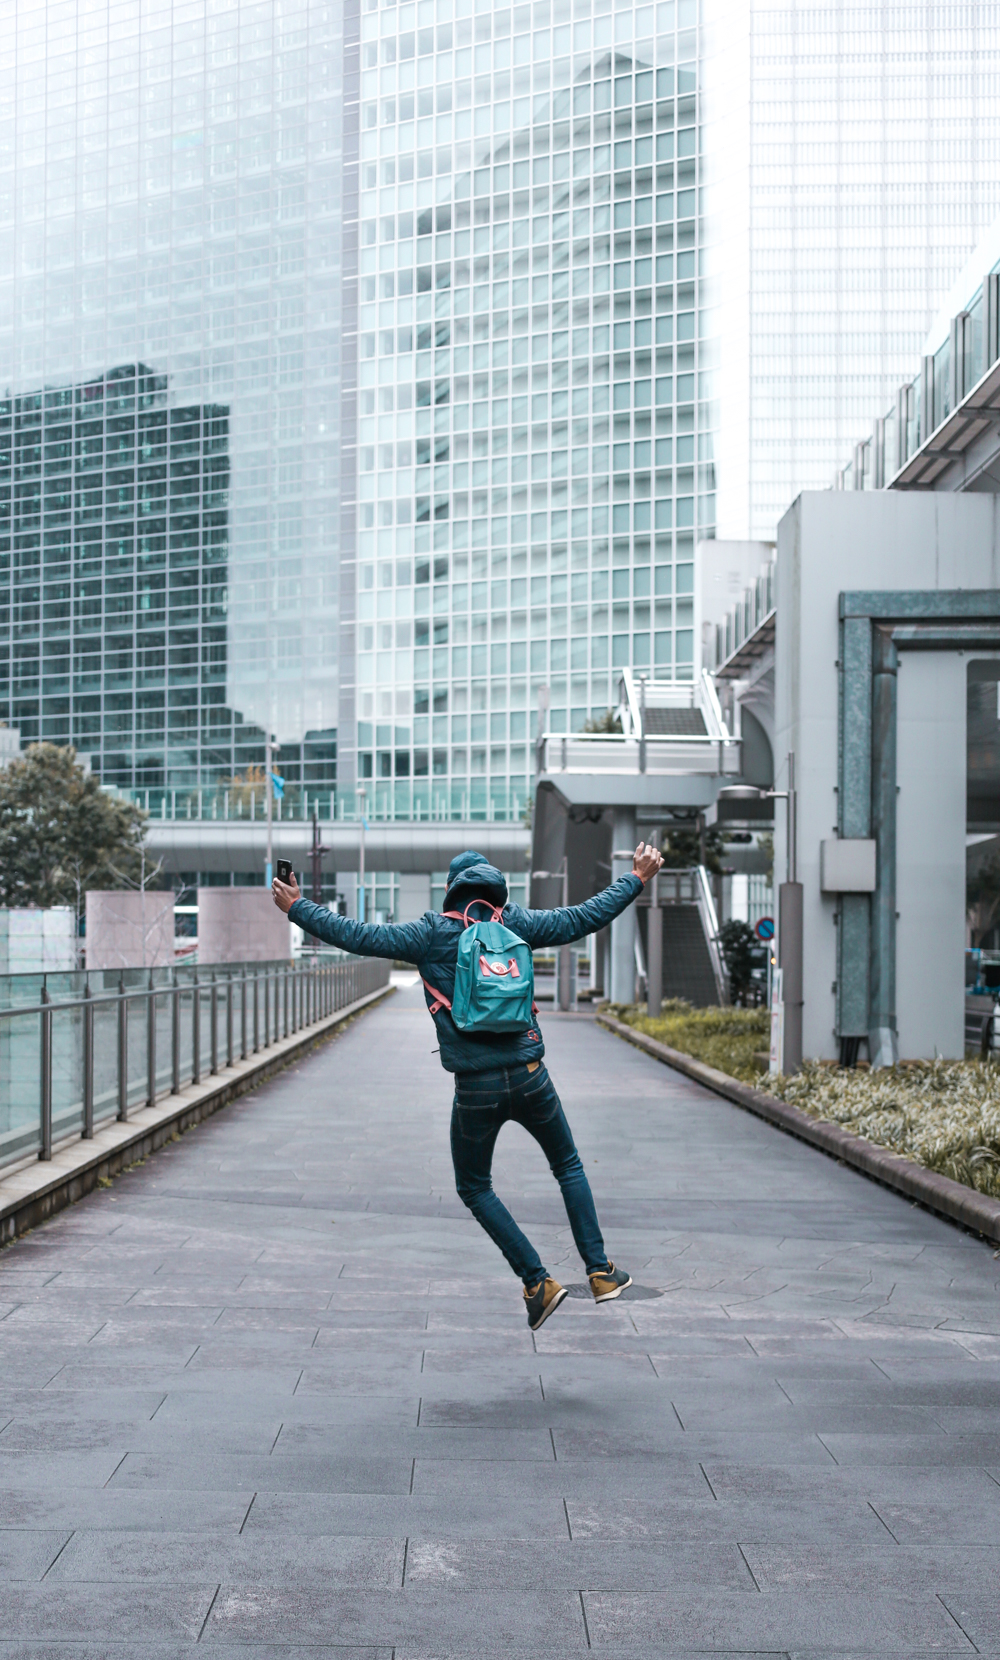 Tokyo Japan | How Far From Home